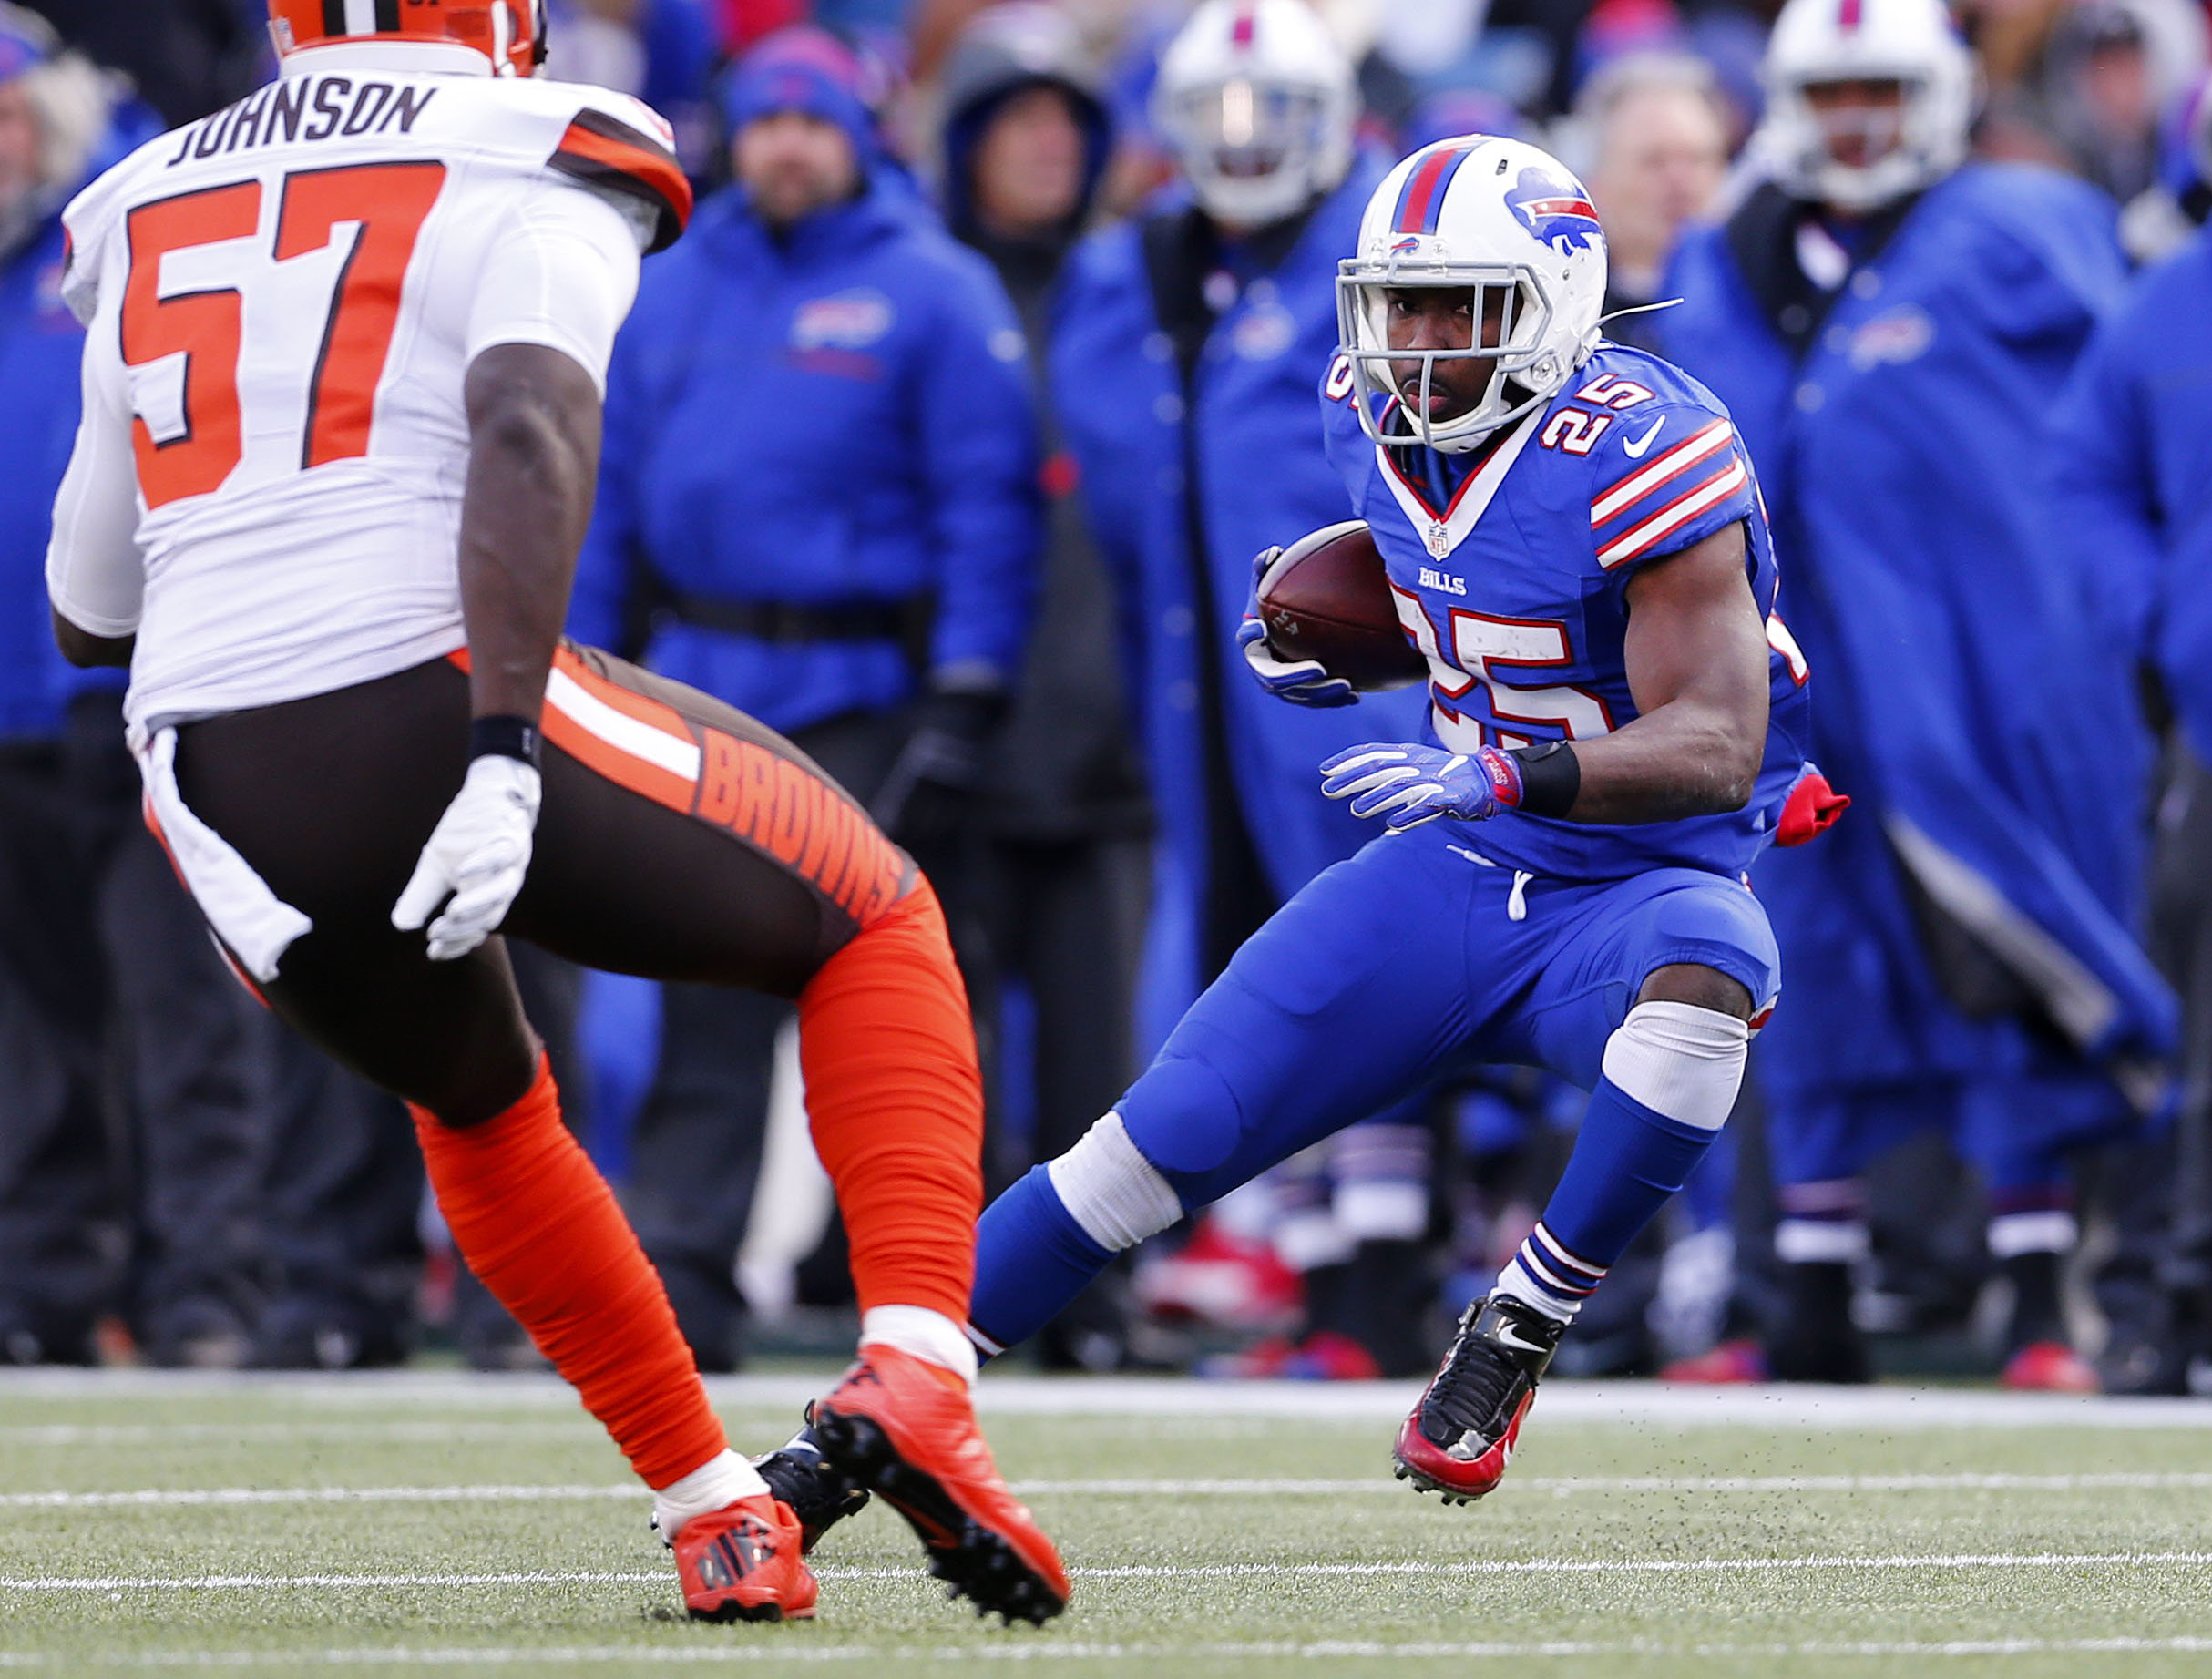 Bills LeSean McCoy looks to get past Browns Cam Johnson in the second quarter at New Era Field in Orchard Park Sunday, December 18, 2016.    (Mark Mulville/The Buffalo News)